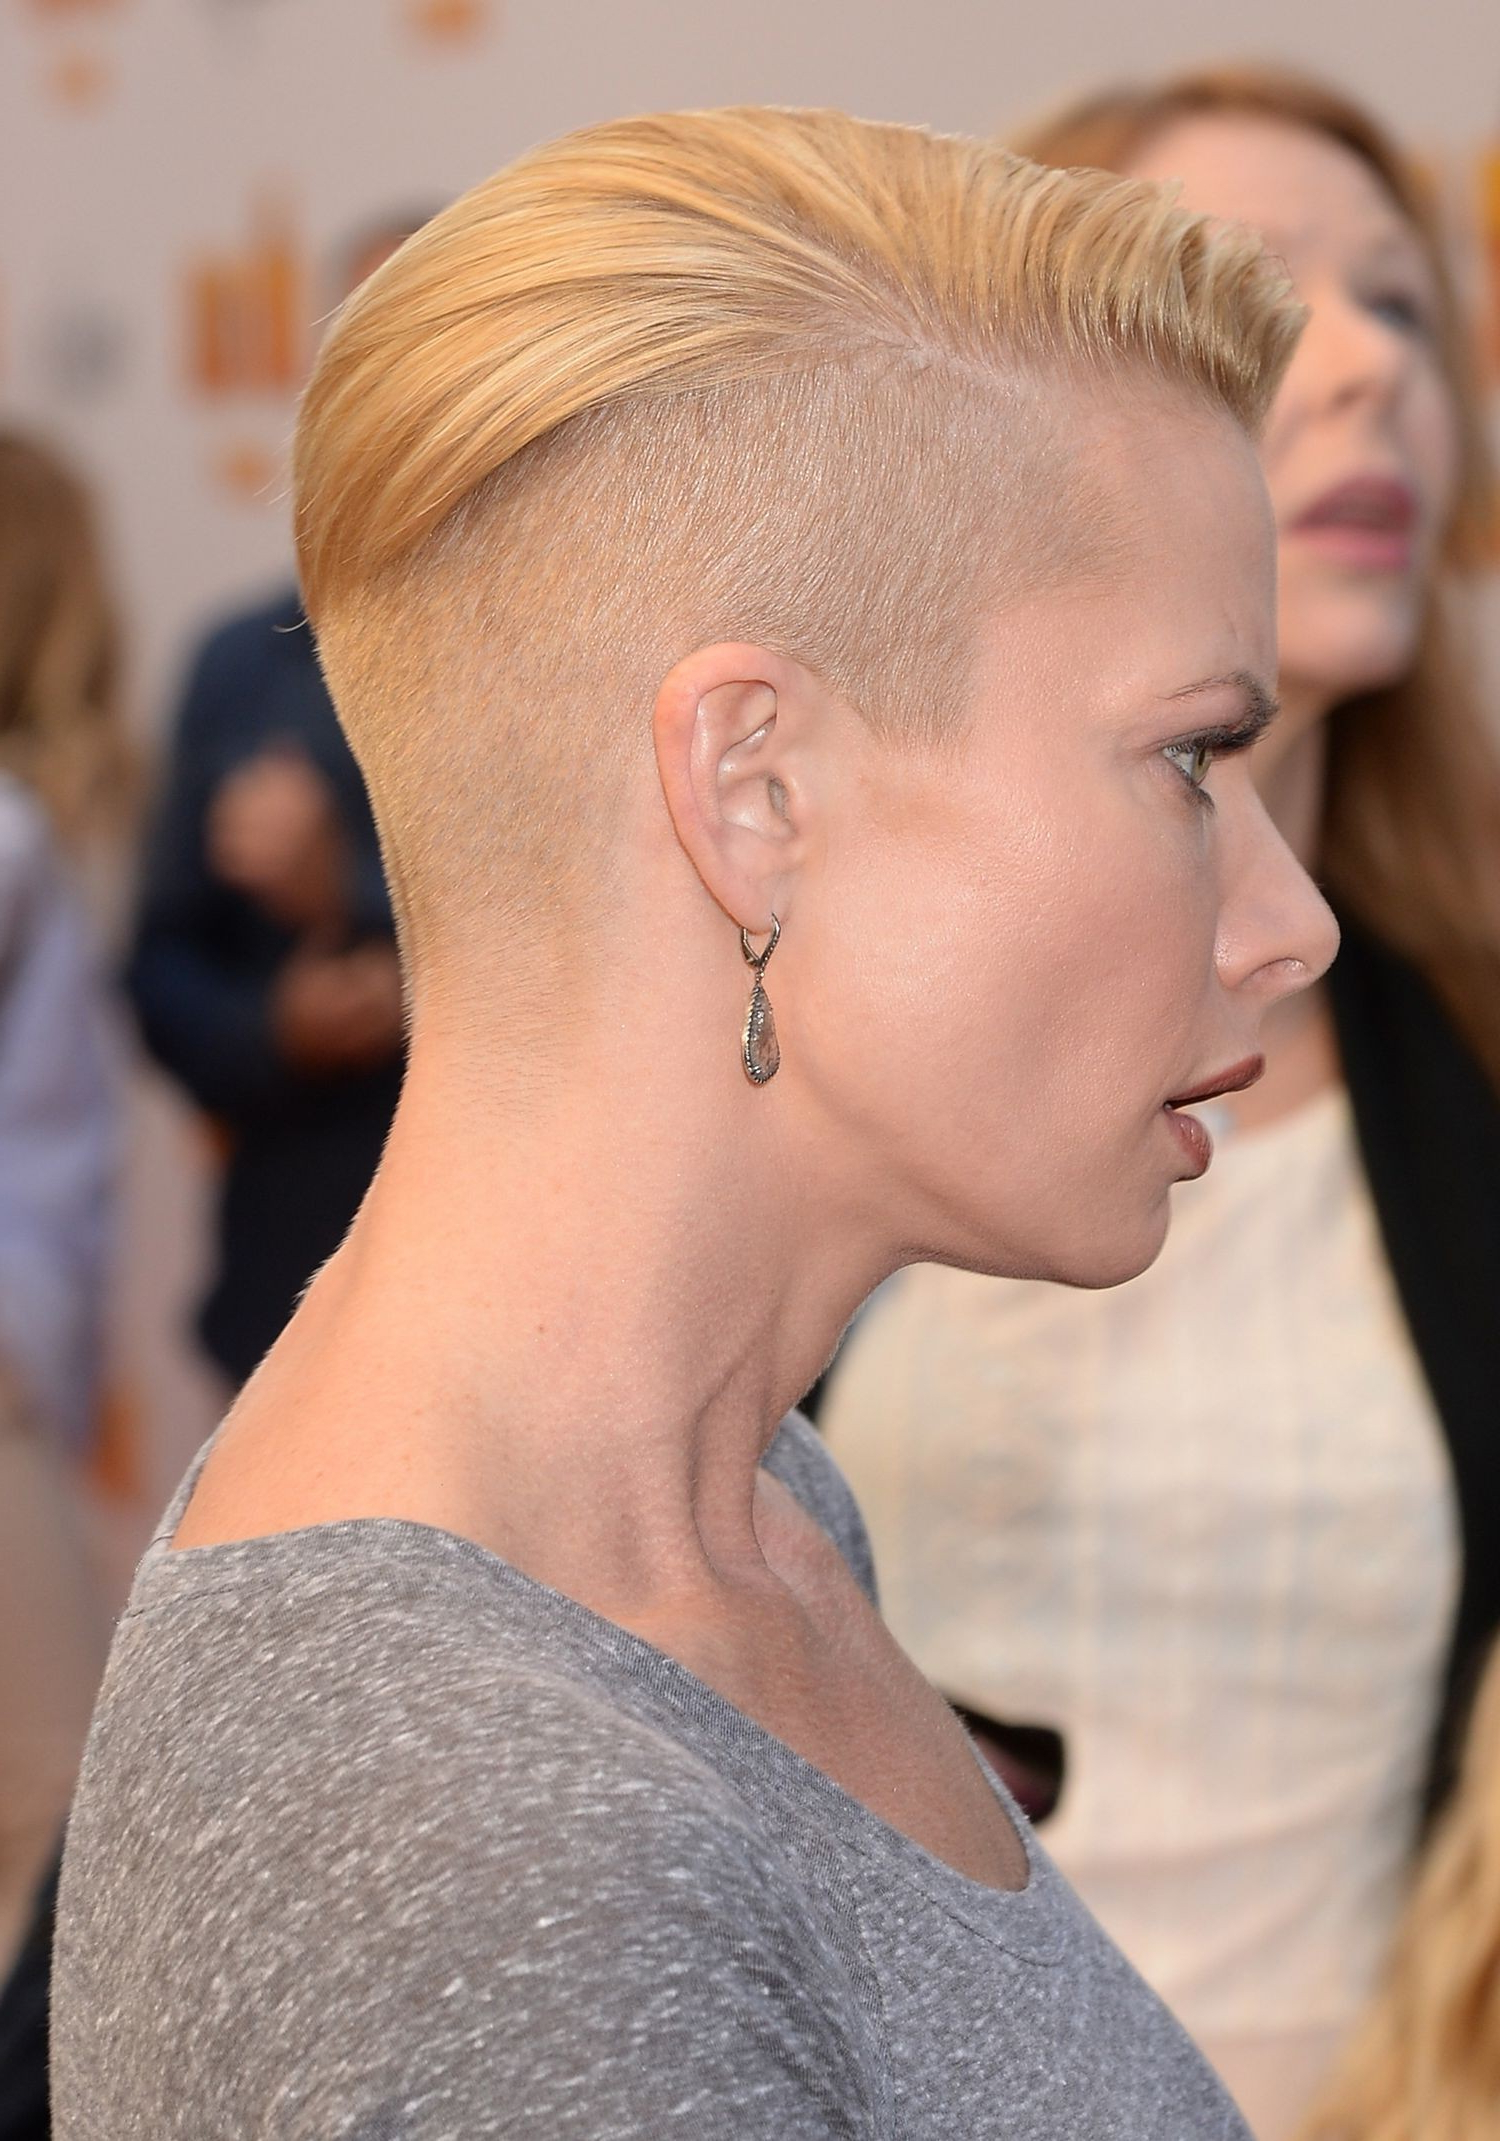 Short Hair Shaved Sides Hairstyle For Women Man Inside Short Haircuts With Shaved Sides (View 24 of 25)